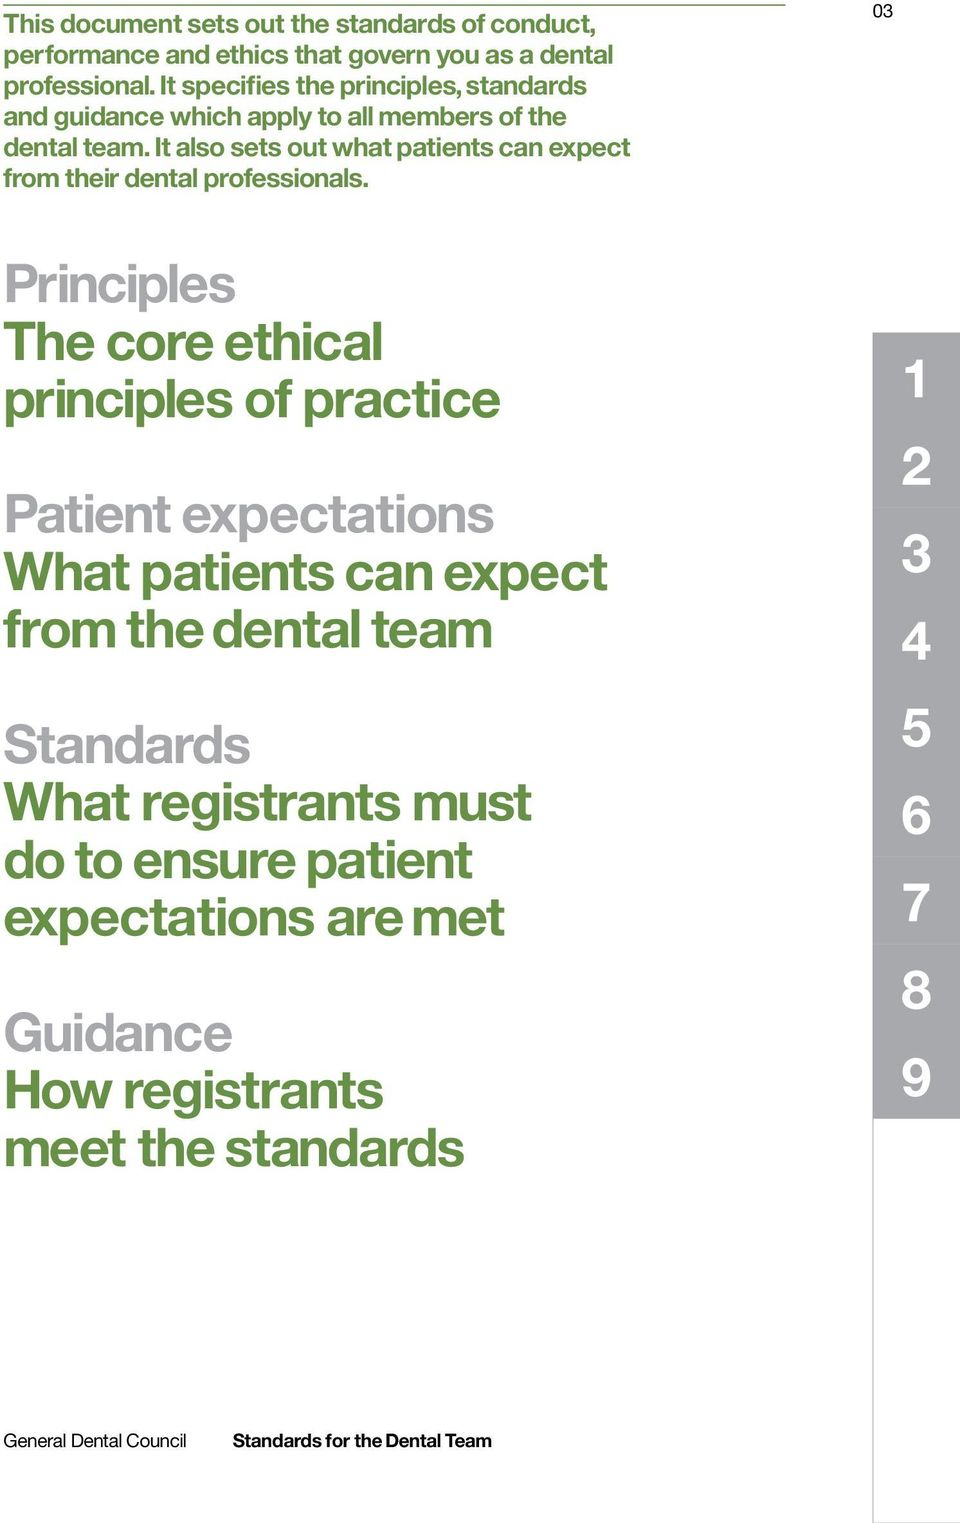 It also sets out what patients can expect from their dental professionals.